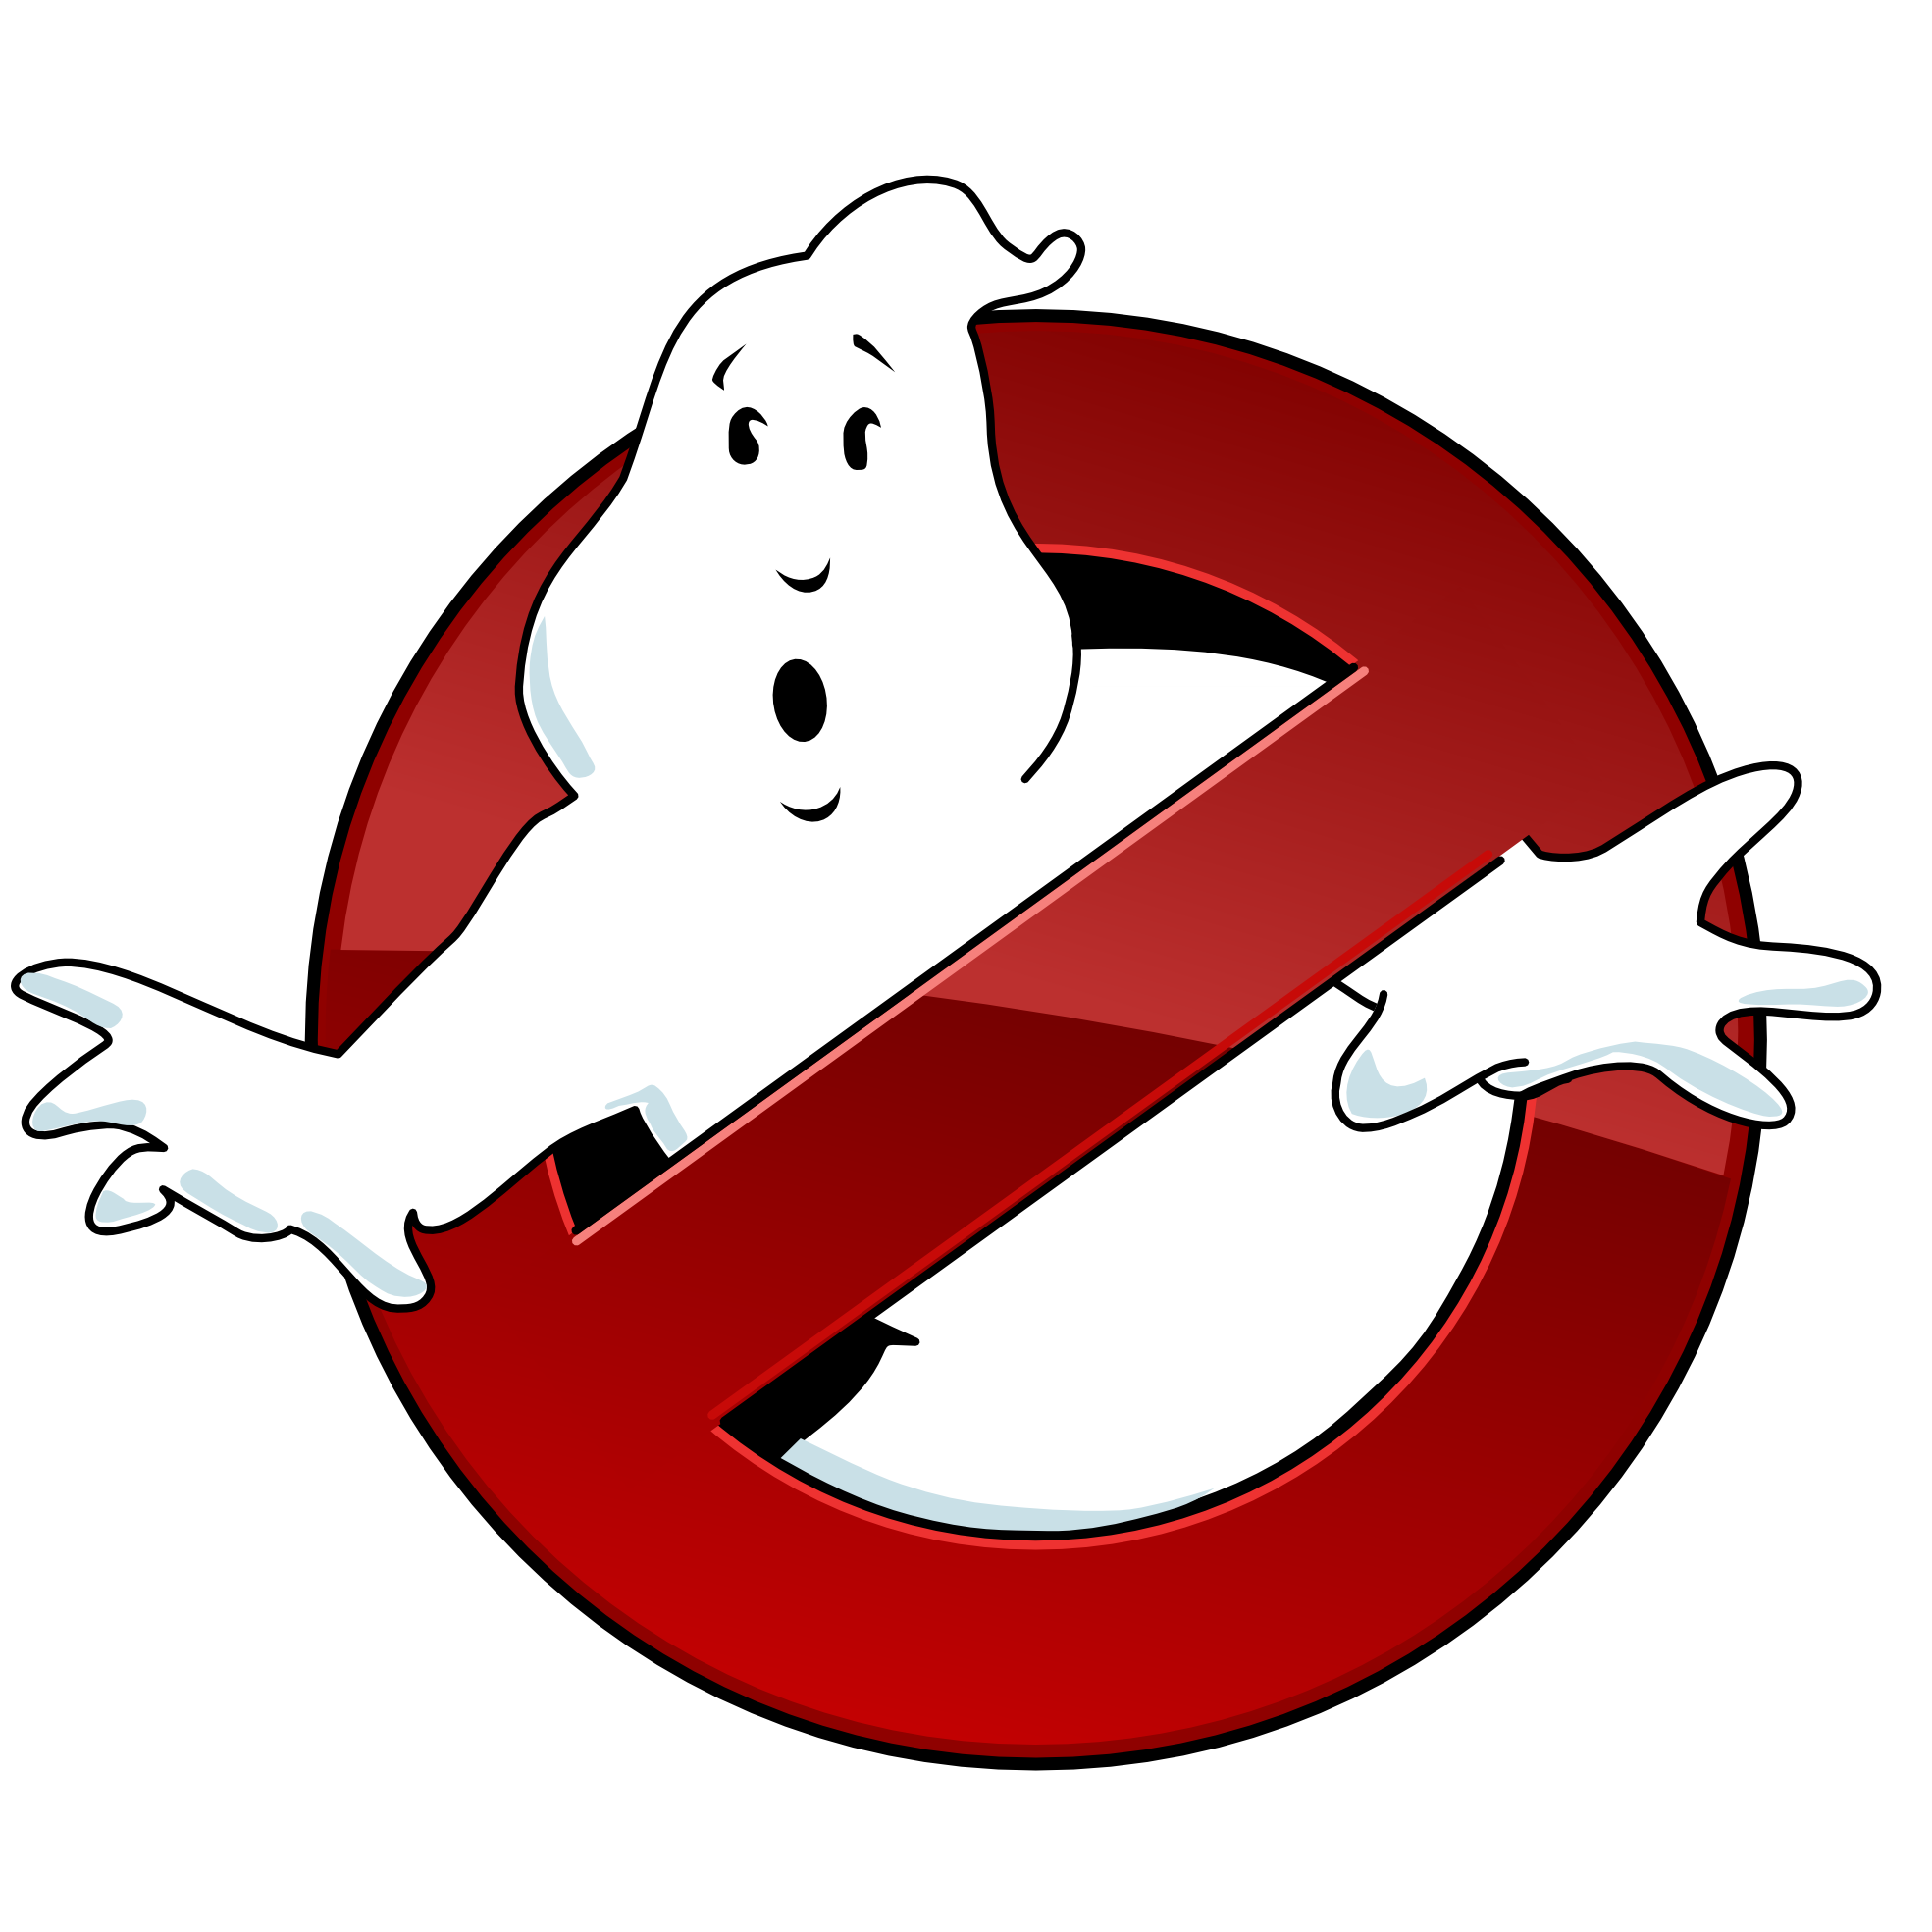 Halloween Ghost Png image #36319